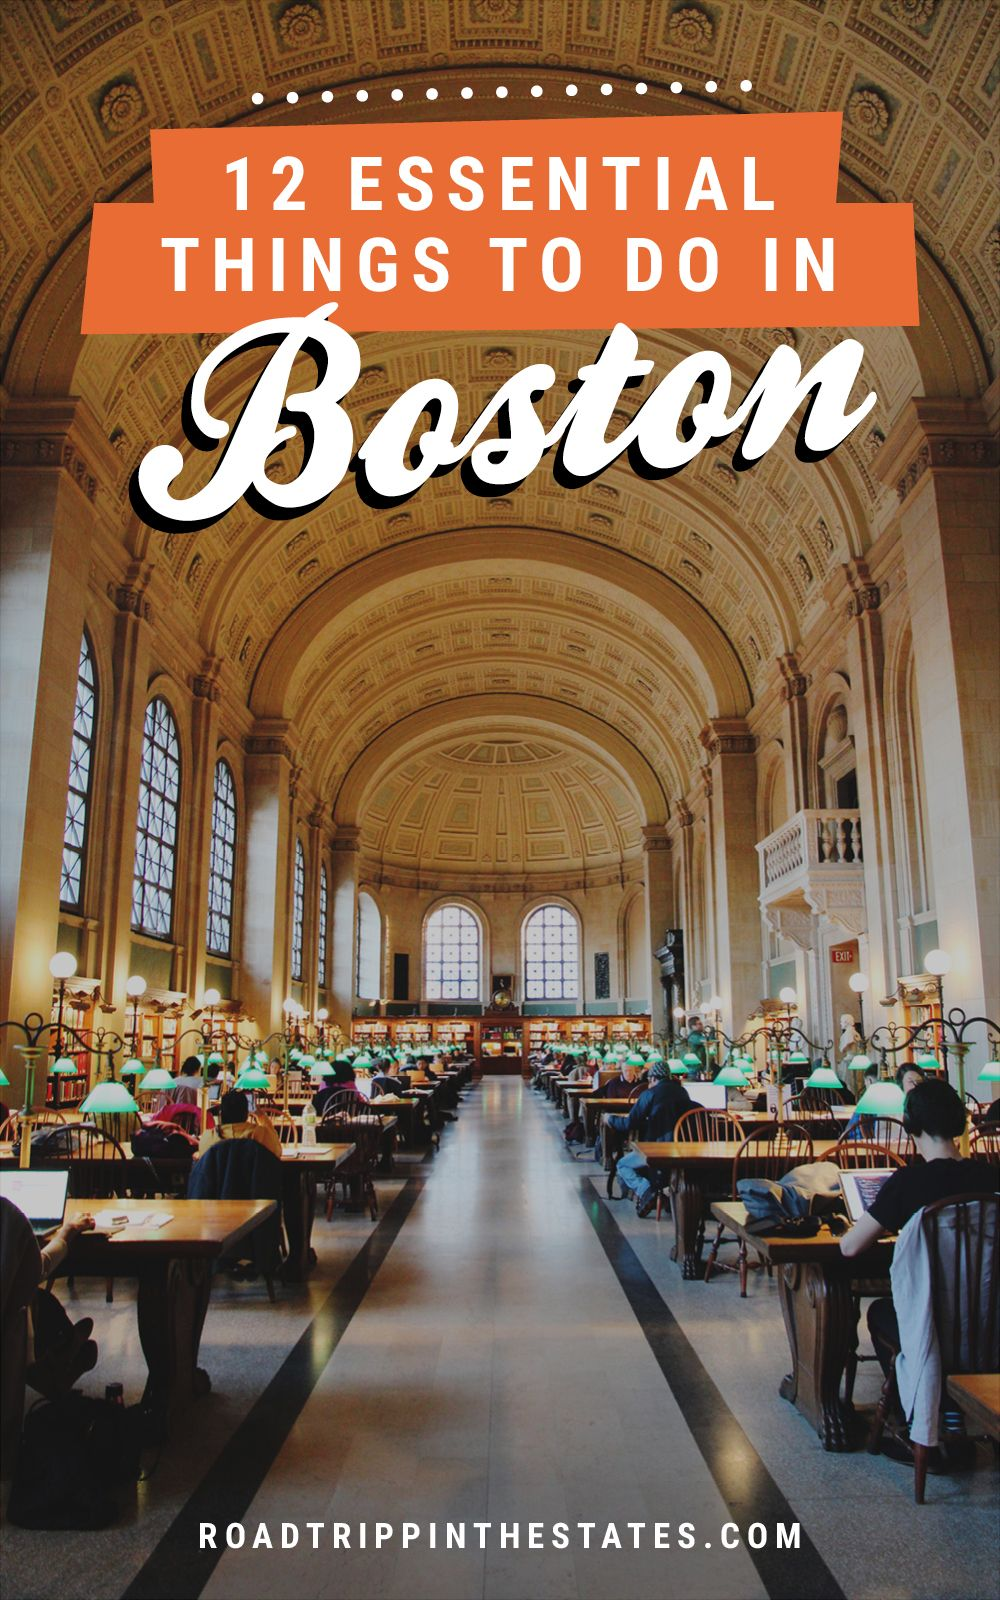 12 essential things to do in Boston Boston things to do